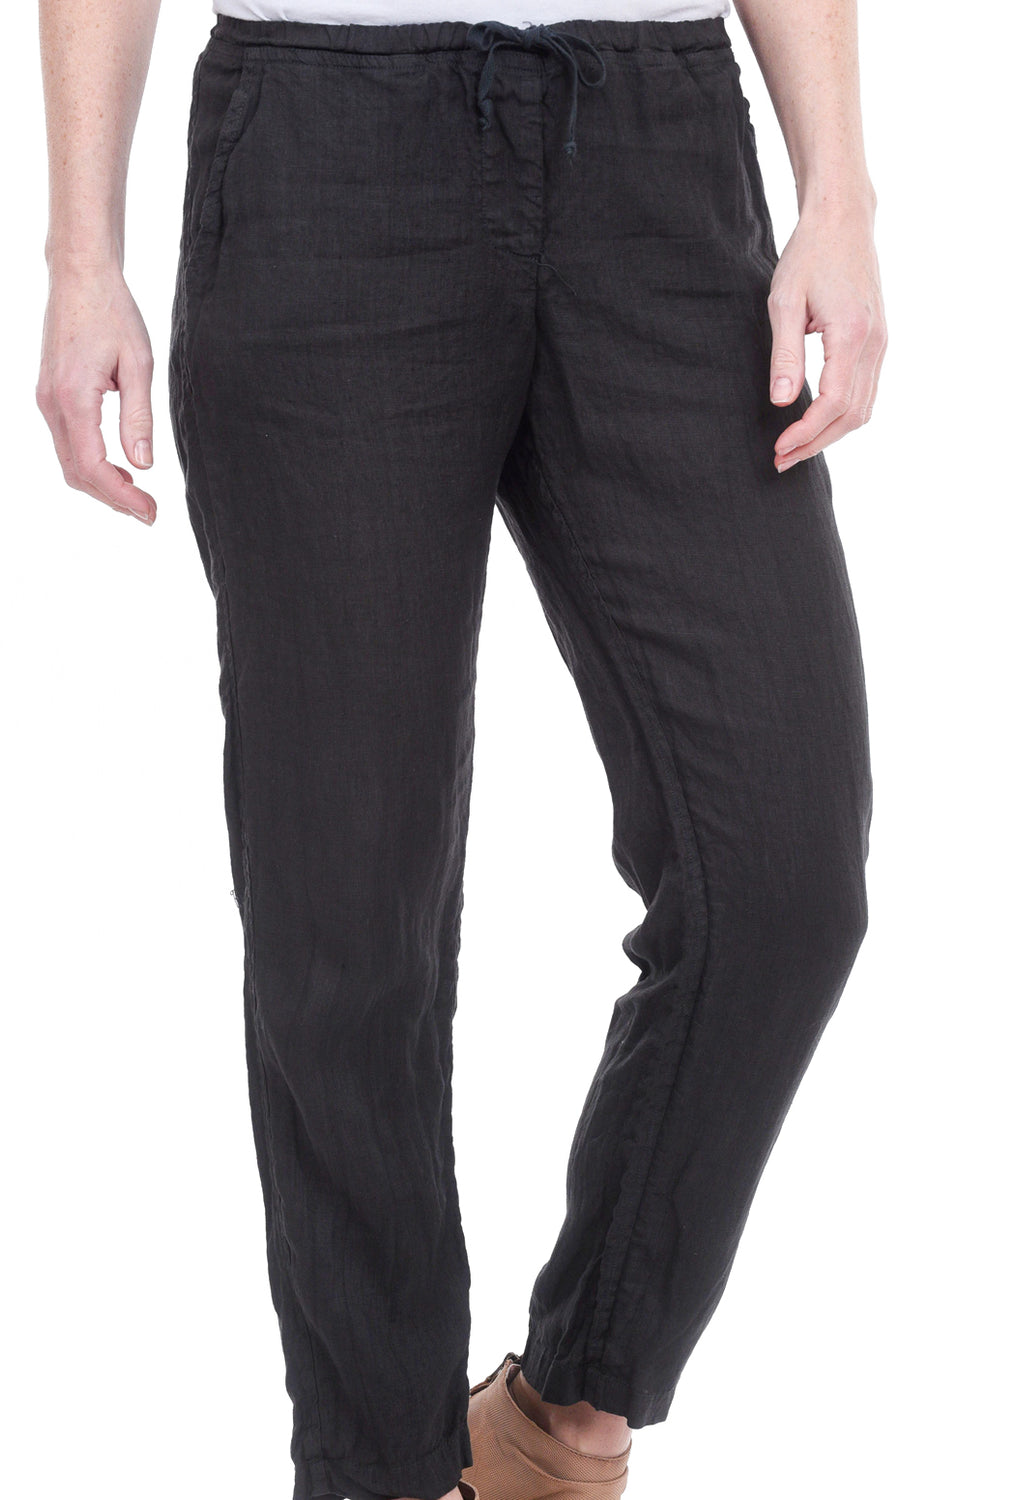 CP Shades Hampton Pants, River Rock Gray